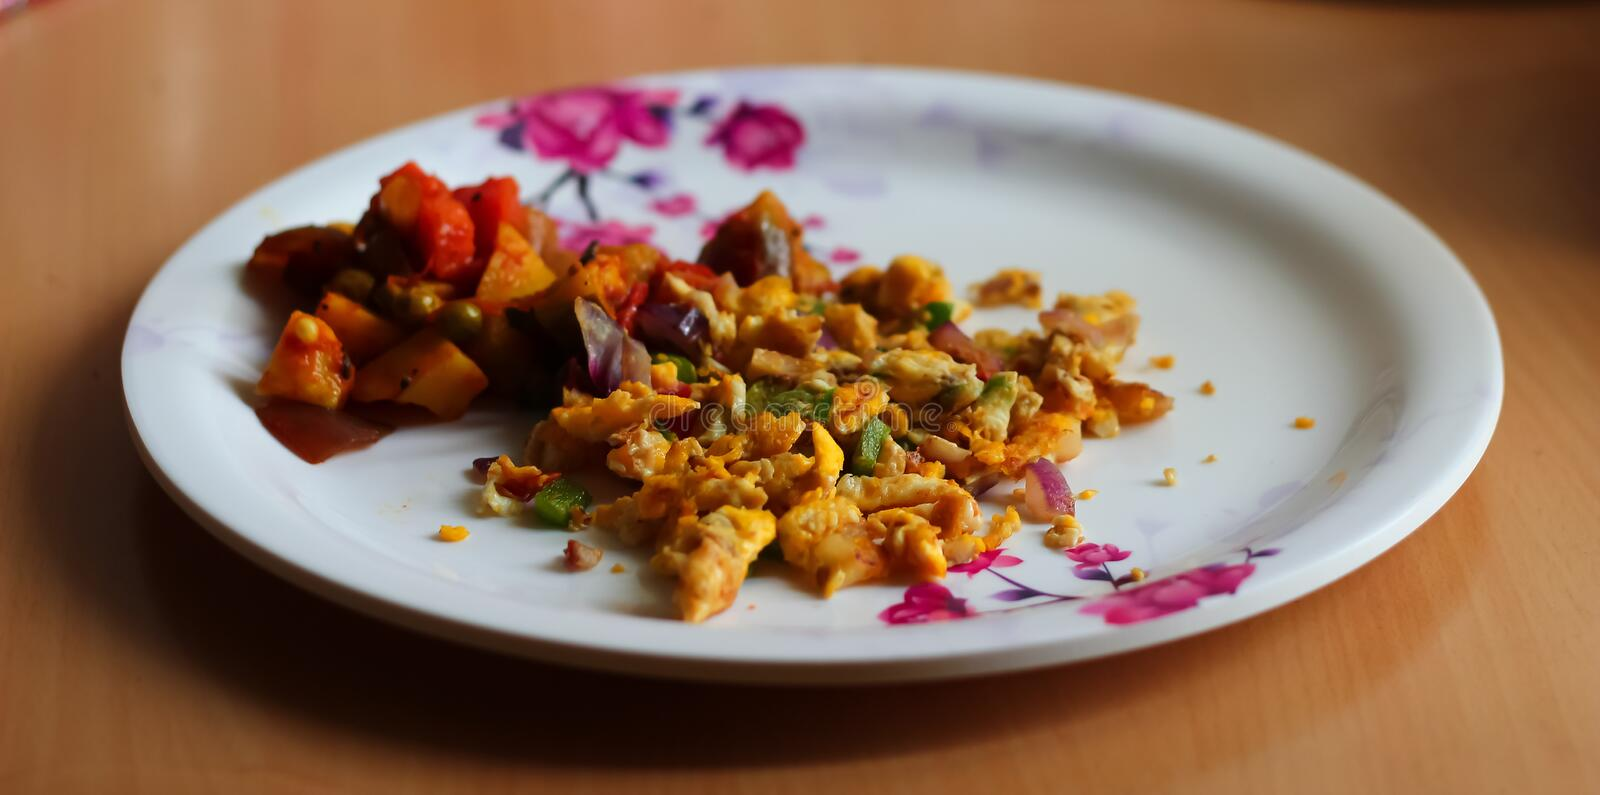 Scrambled egg omlette and mixed vegetable served on a plate. Indian home made dish. side view royalty free stock photos